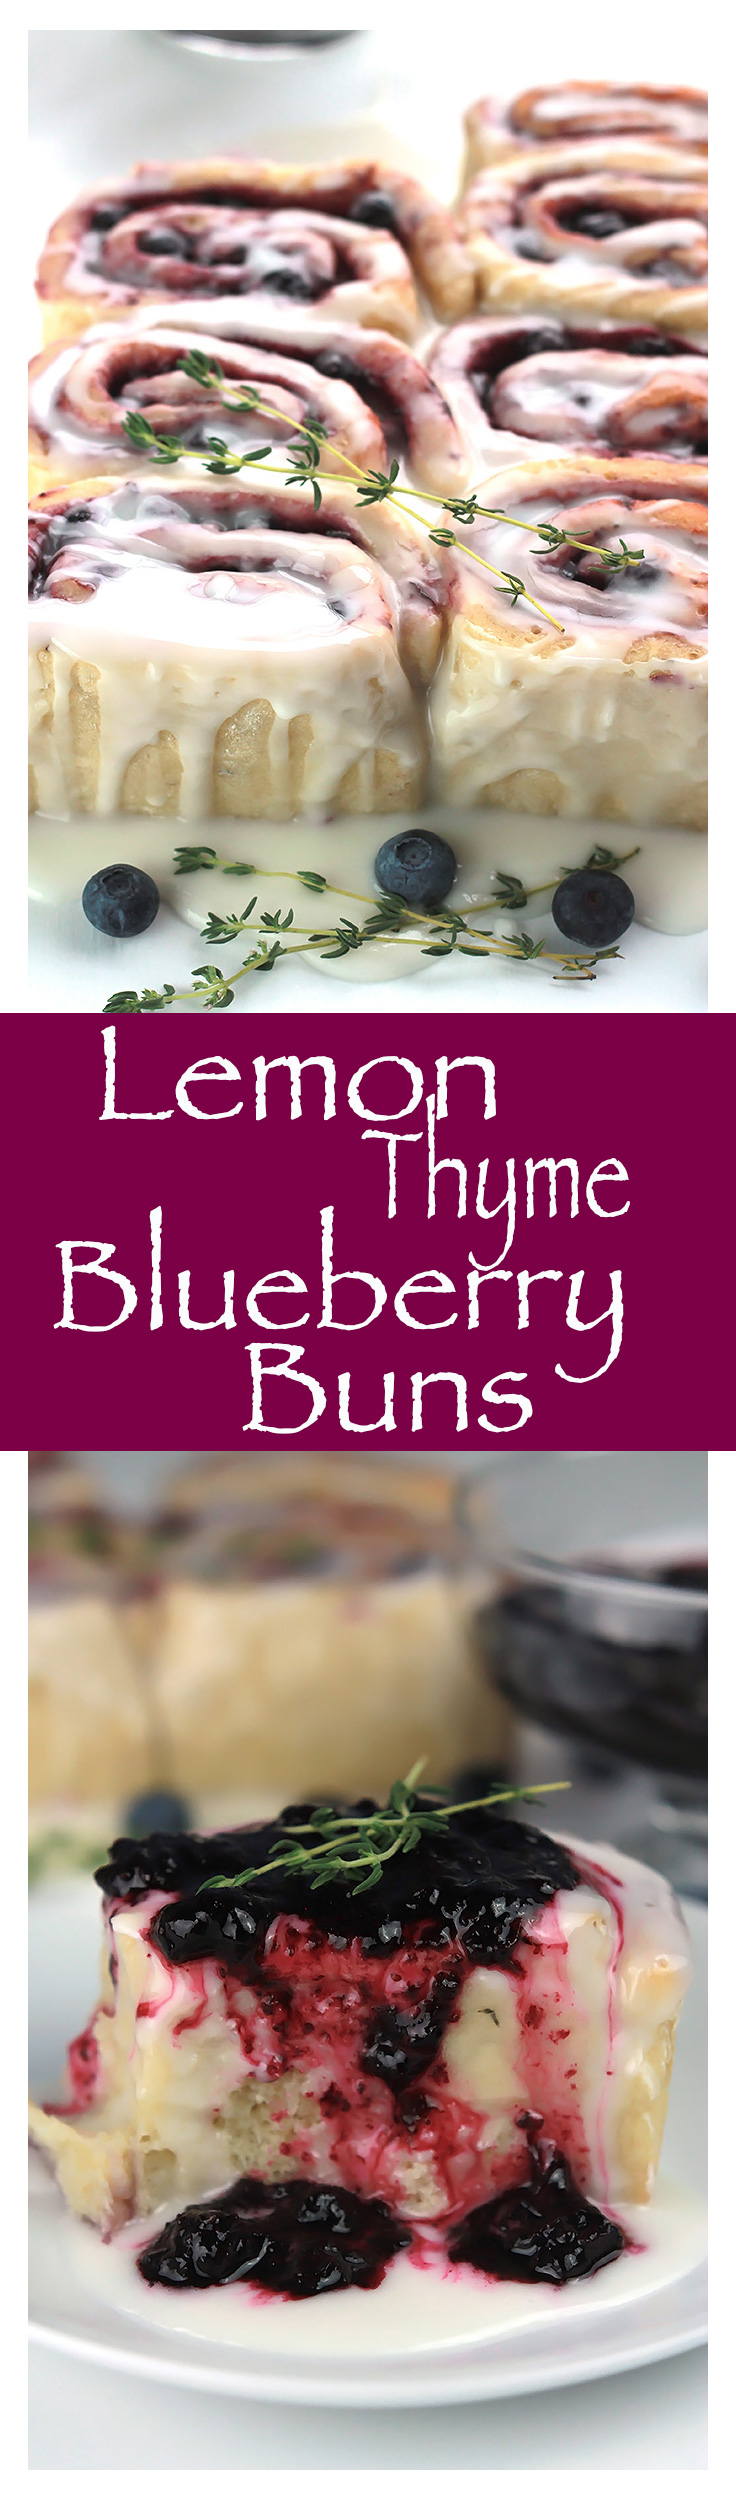 Easy and delicious, Lemon Thyme Blueberry Buns , perfect for a brunch gathering or an afternoon snack with a spot of tea.